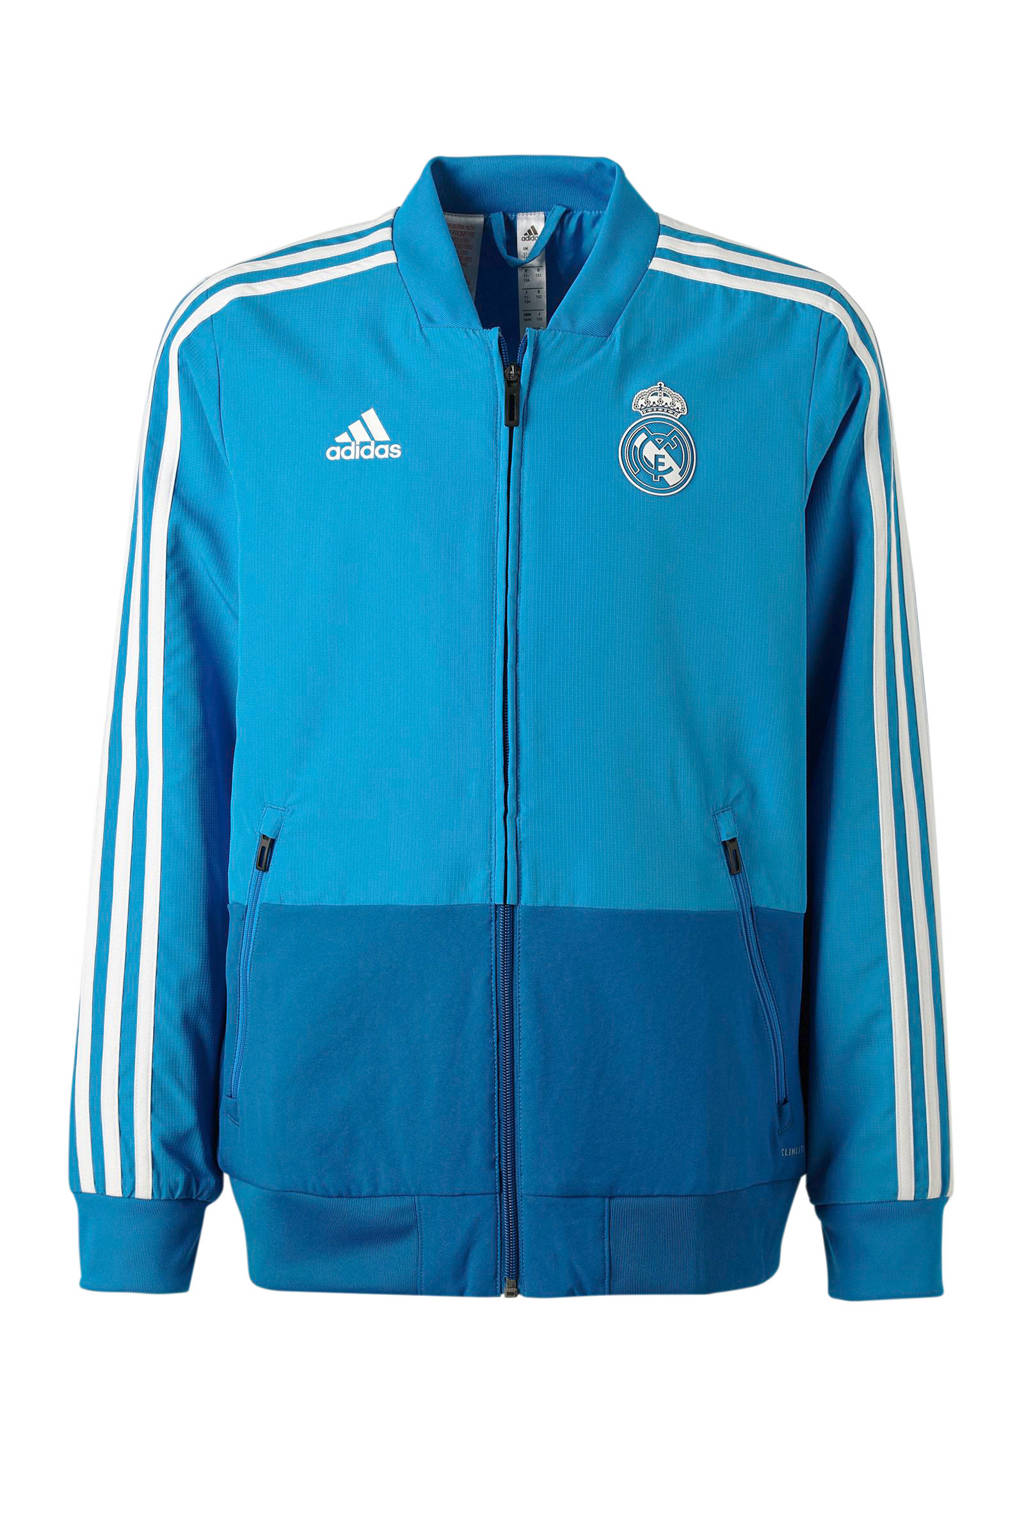 adidas performance Junior Real Madrid sportvest blauw, Blauw/wit